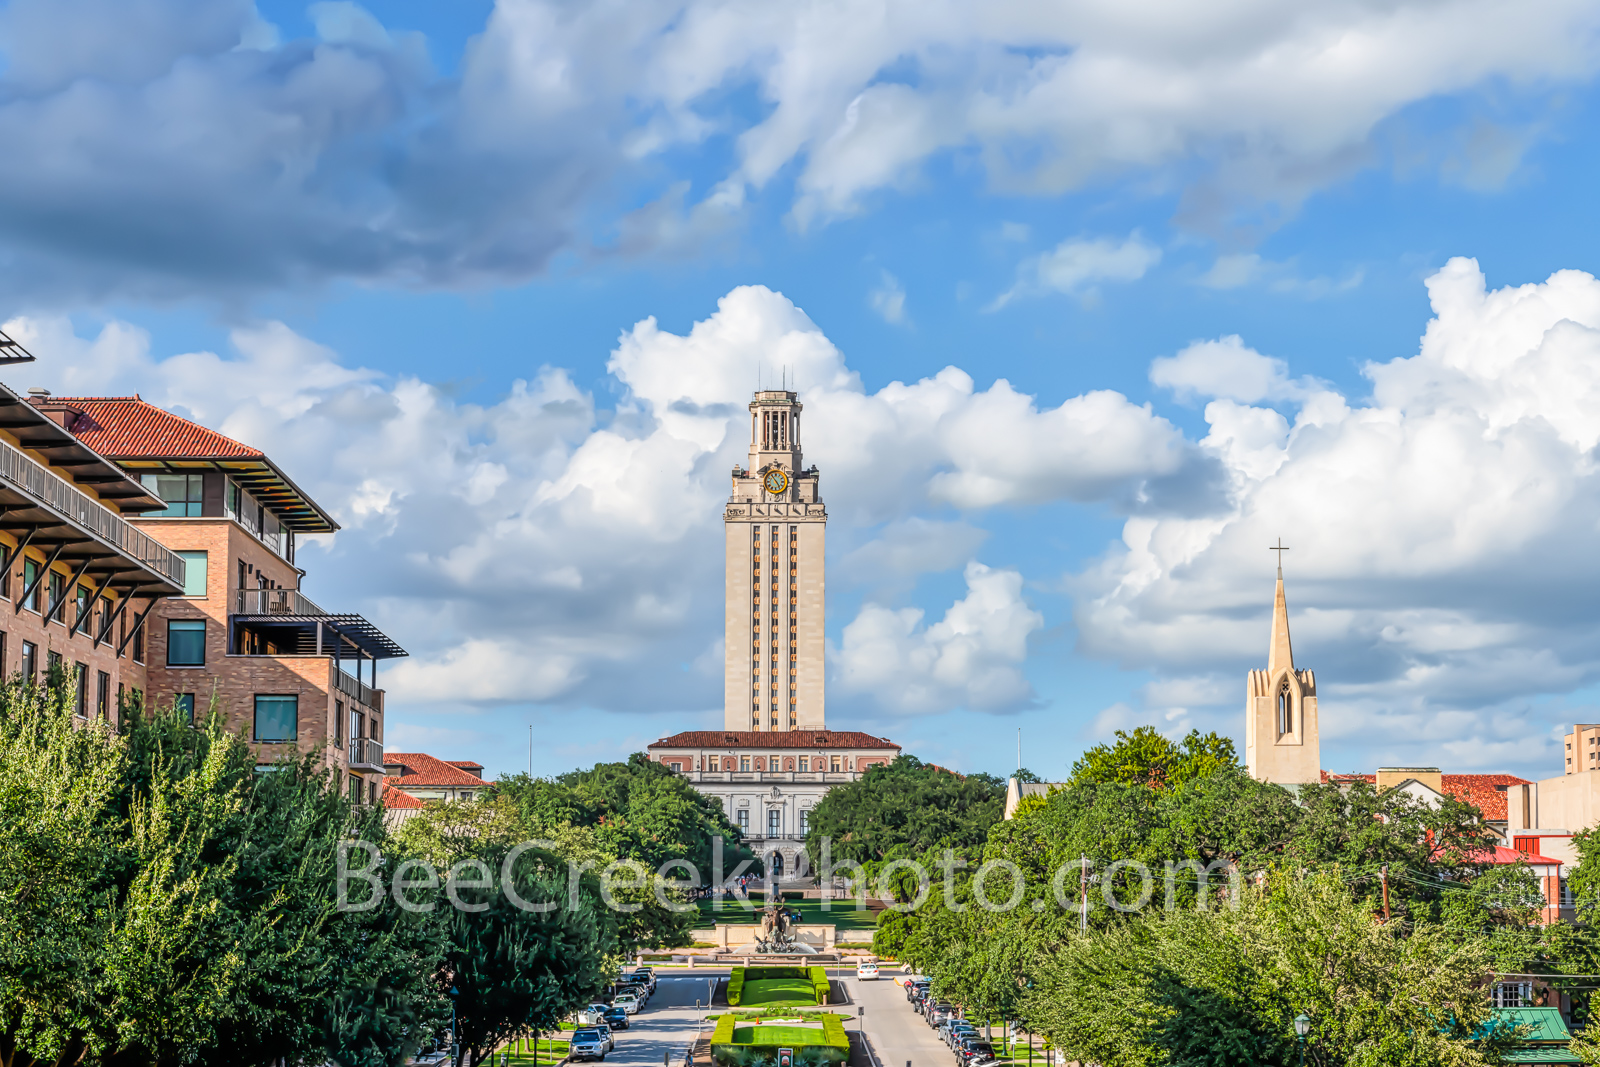 University of Texas Tower  - This was the perfect day to capture this image of the UT Tower in downtown Austin Texas.The tower...